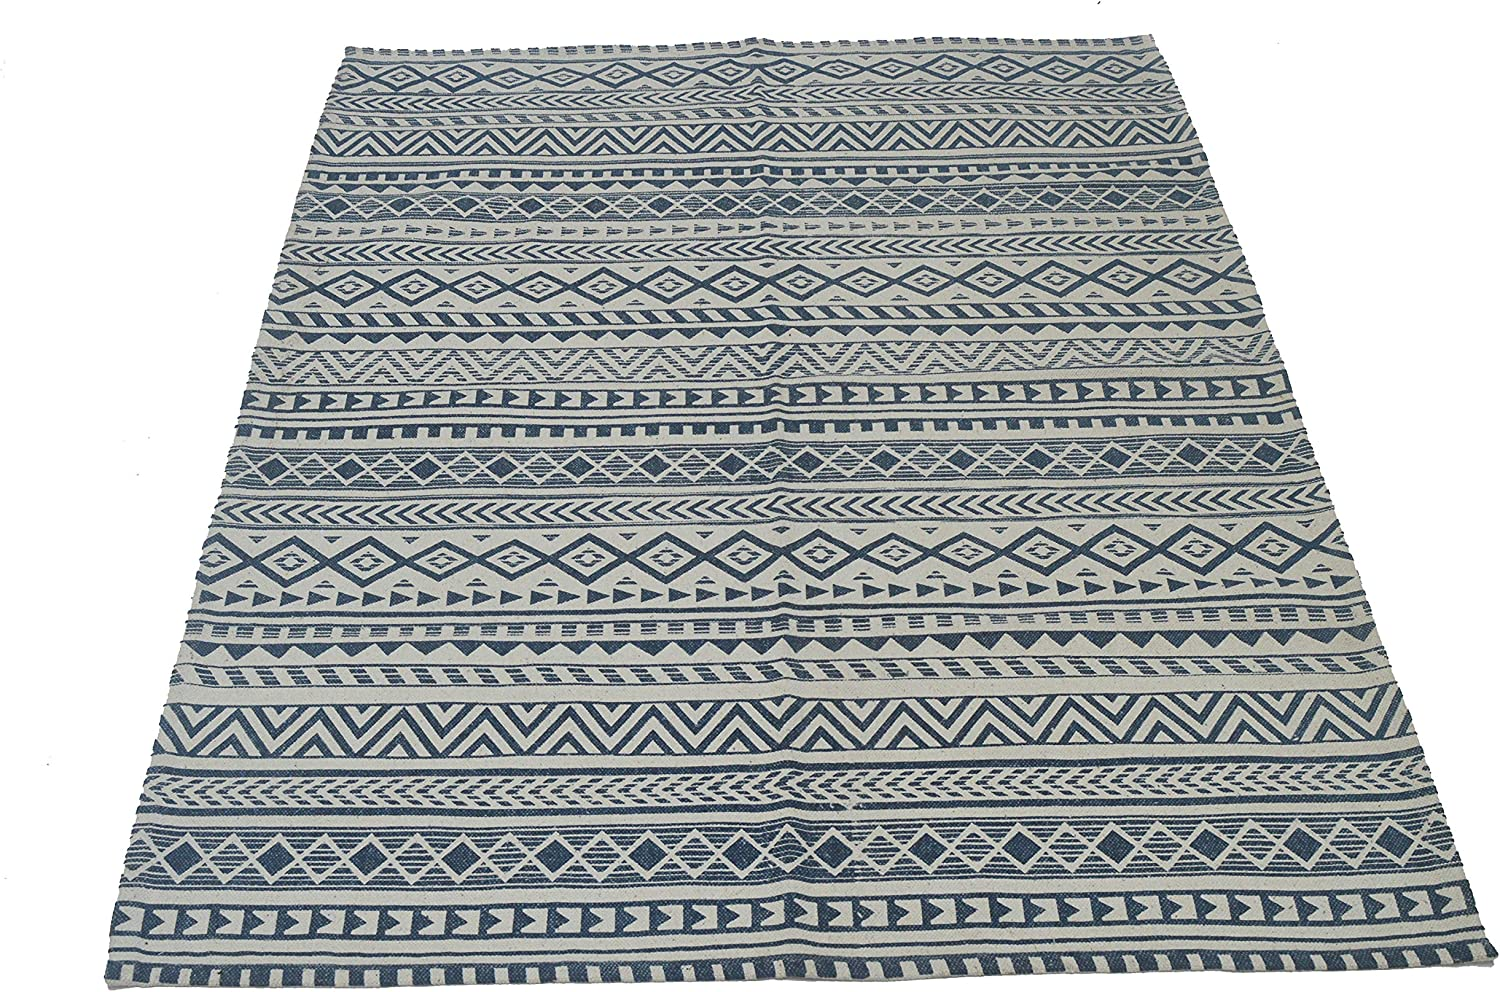 """CHARDIN HOME: Miami 100% Cotton Area Rug - Hand Woven, Printed & Stone Washed Rug for Living Room, Bedroom, Study Room, Kids Room, Dorm Room. Size: 4'x6' (48""""x68""""), Denim Blue/White"""